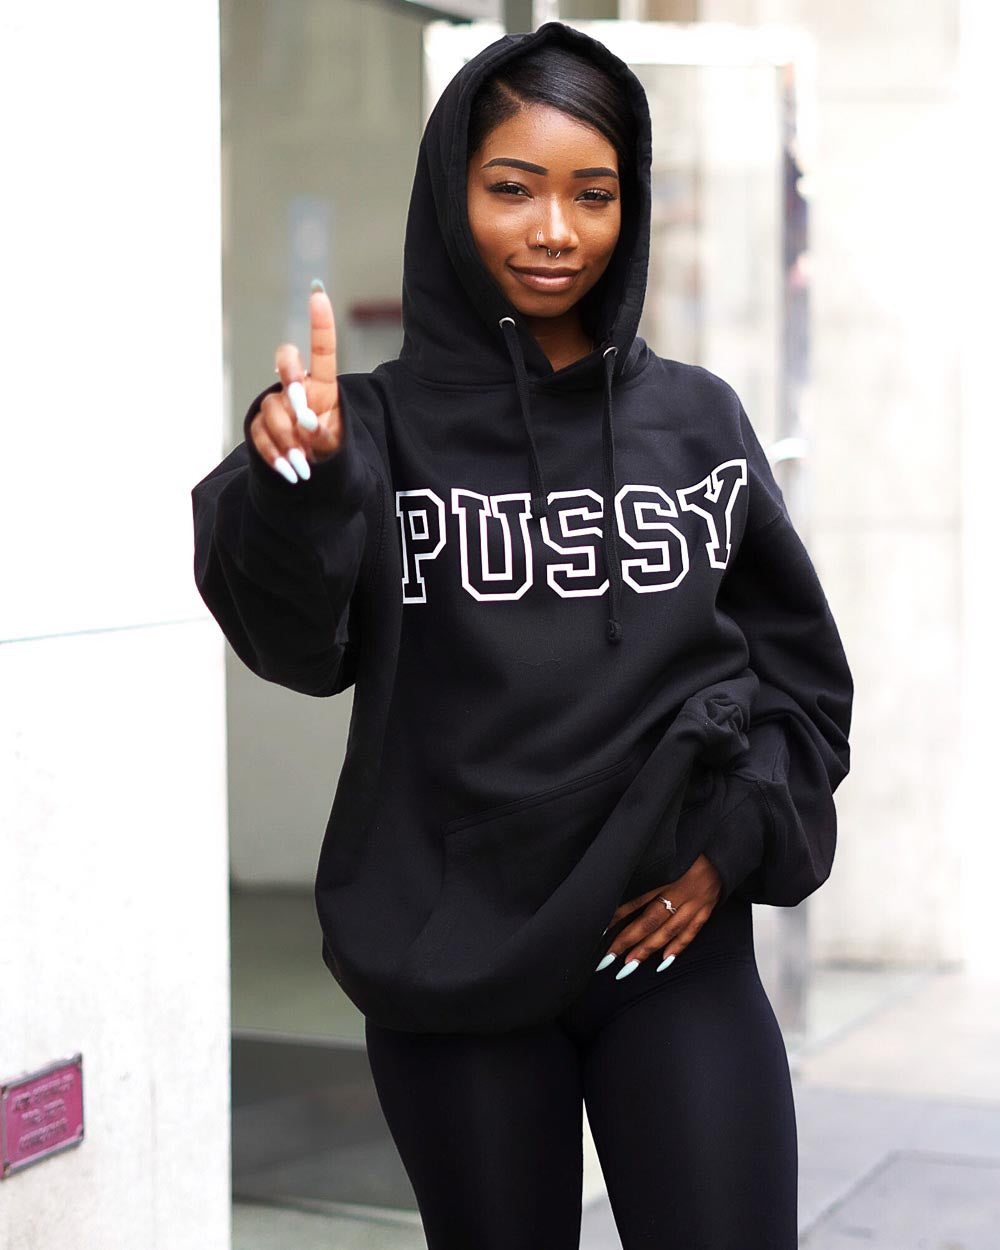 PUSSY hoodie, blk/wht